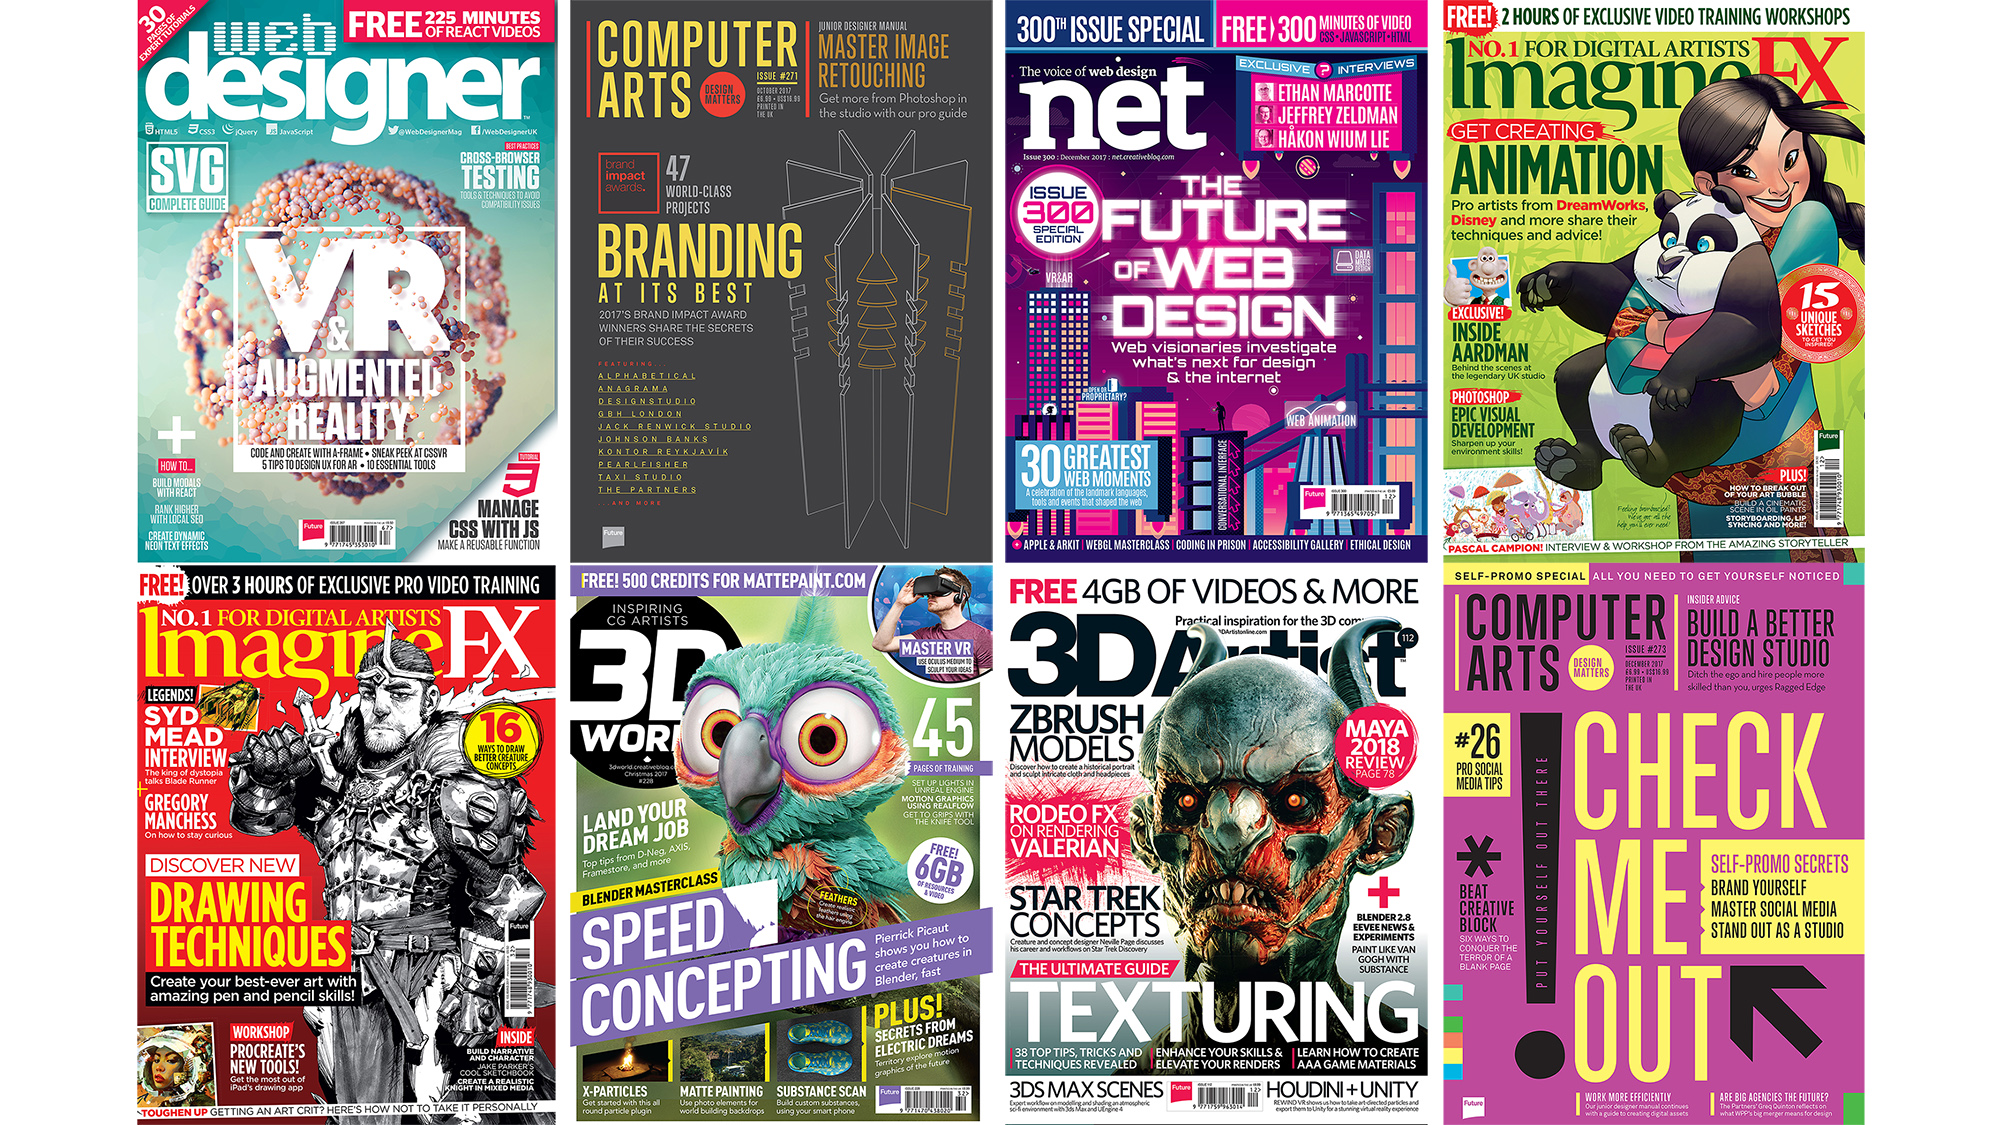 Get your work featured in an industry-leading magazine